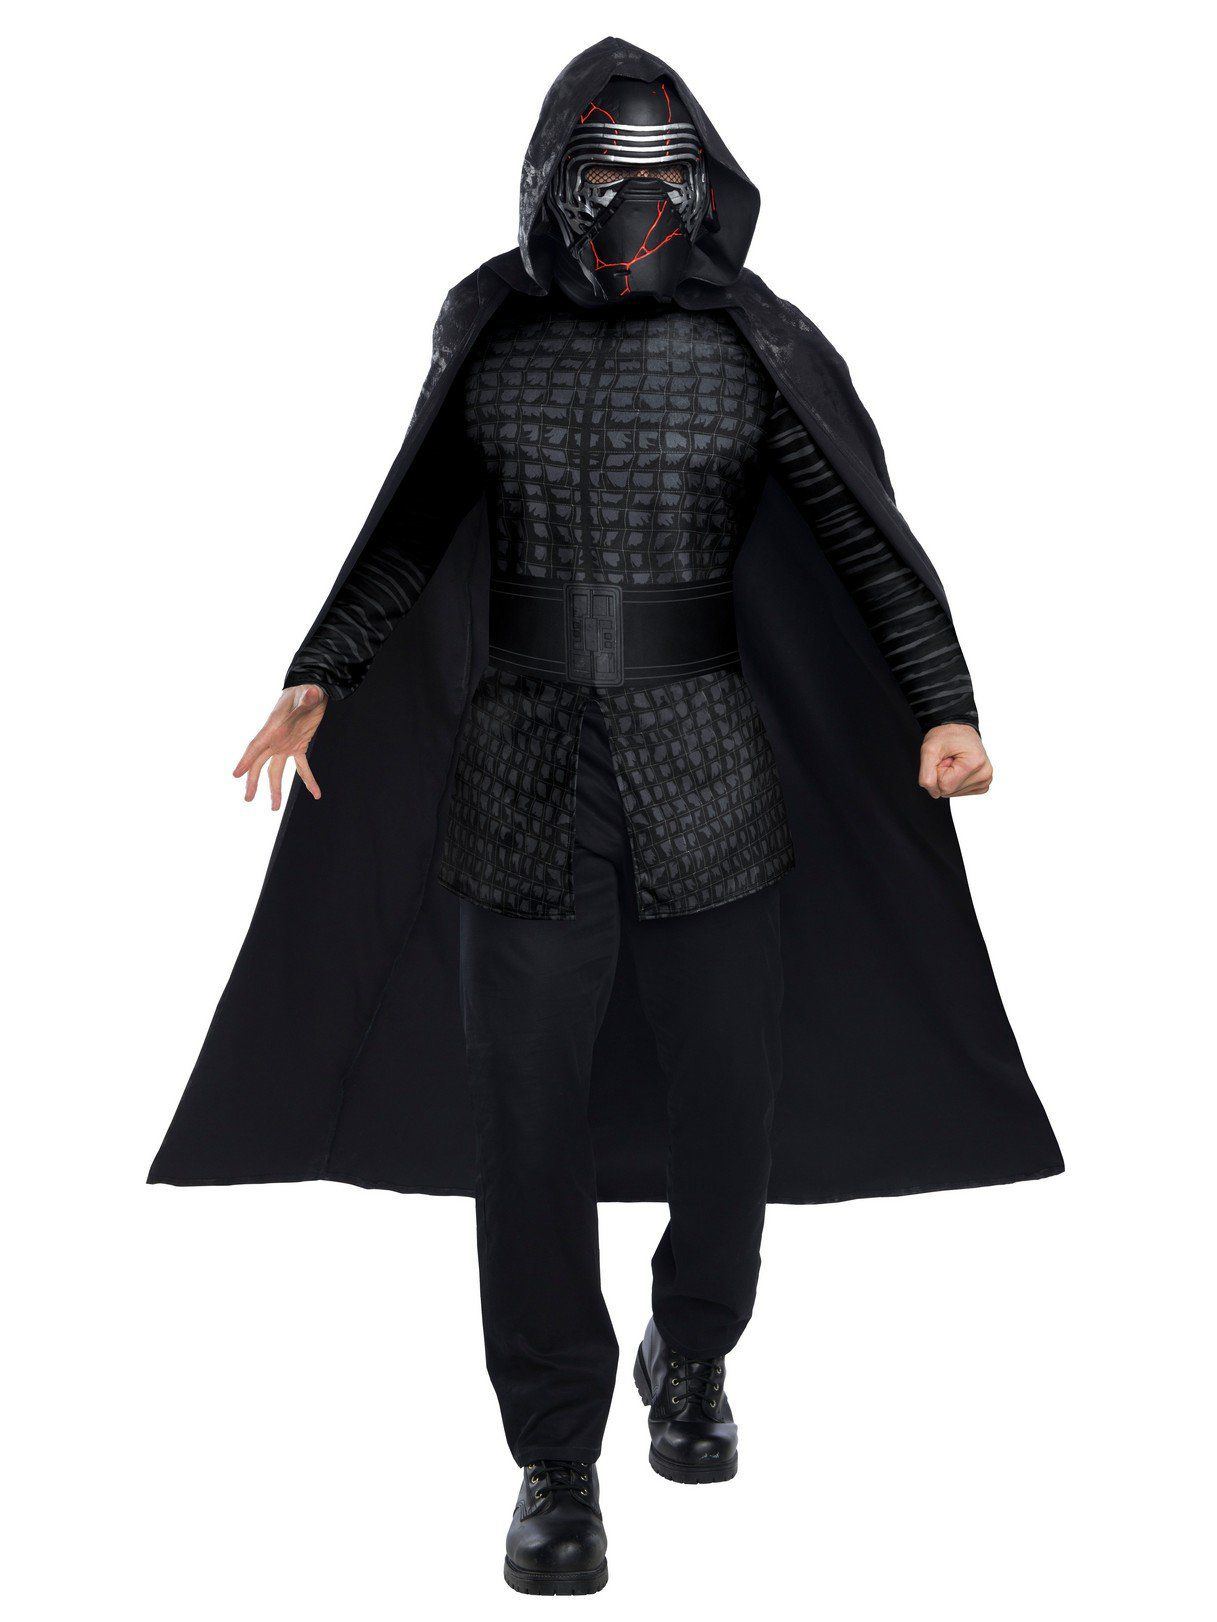 Star Wars The Rise Of Skywalker Kylo Ren Costume For Adults